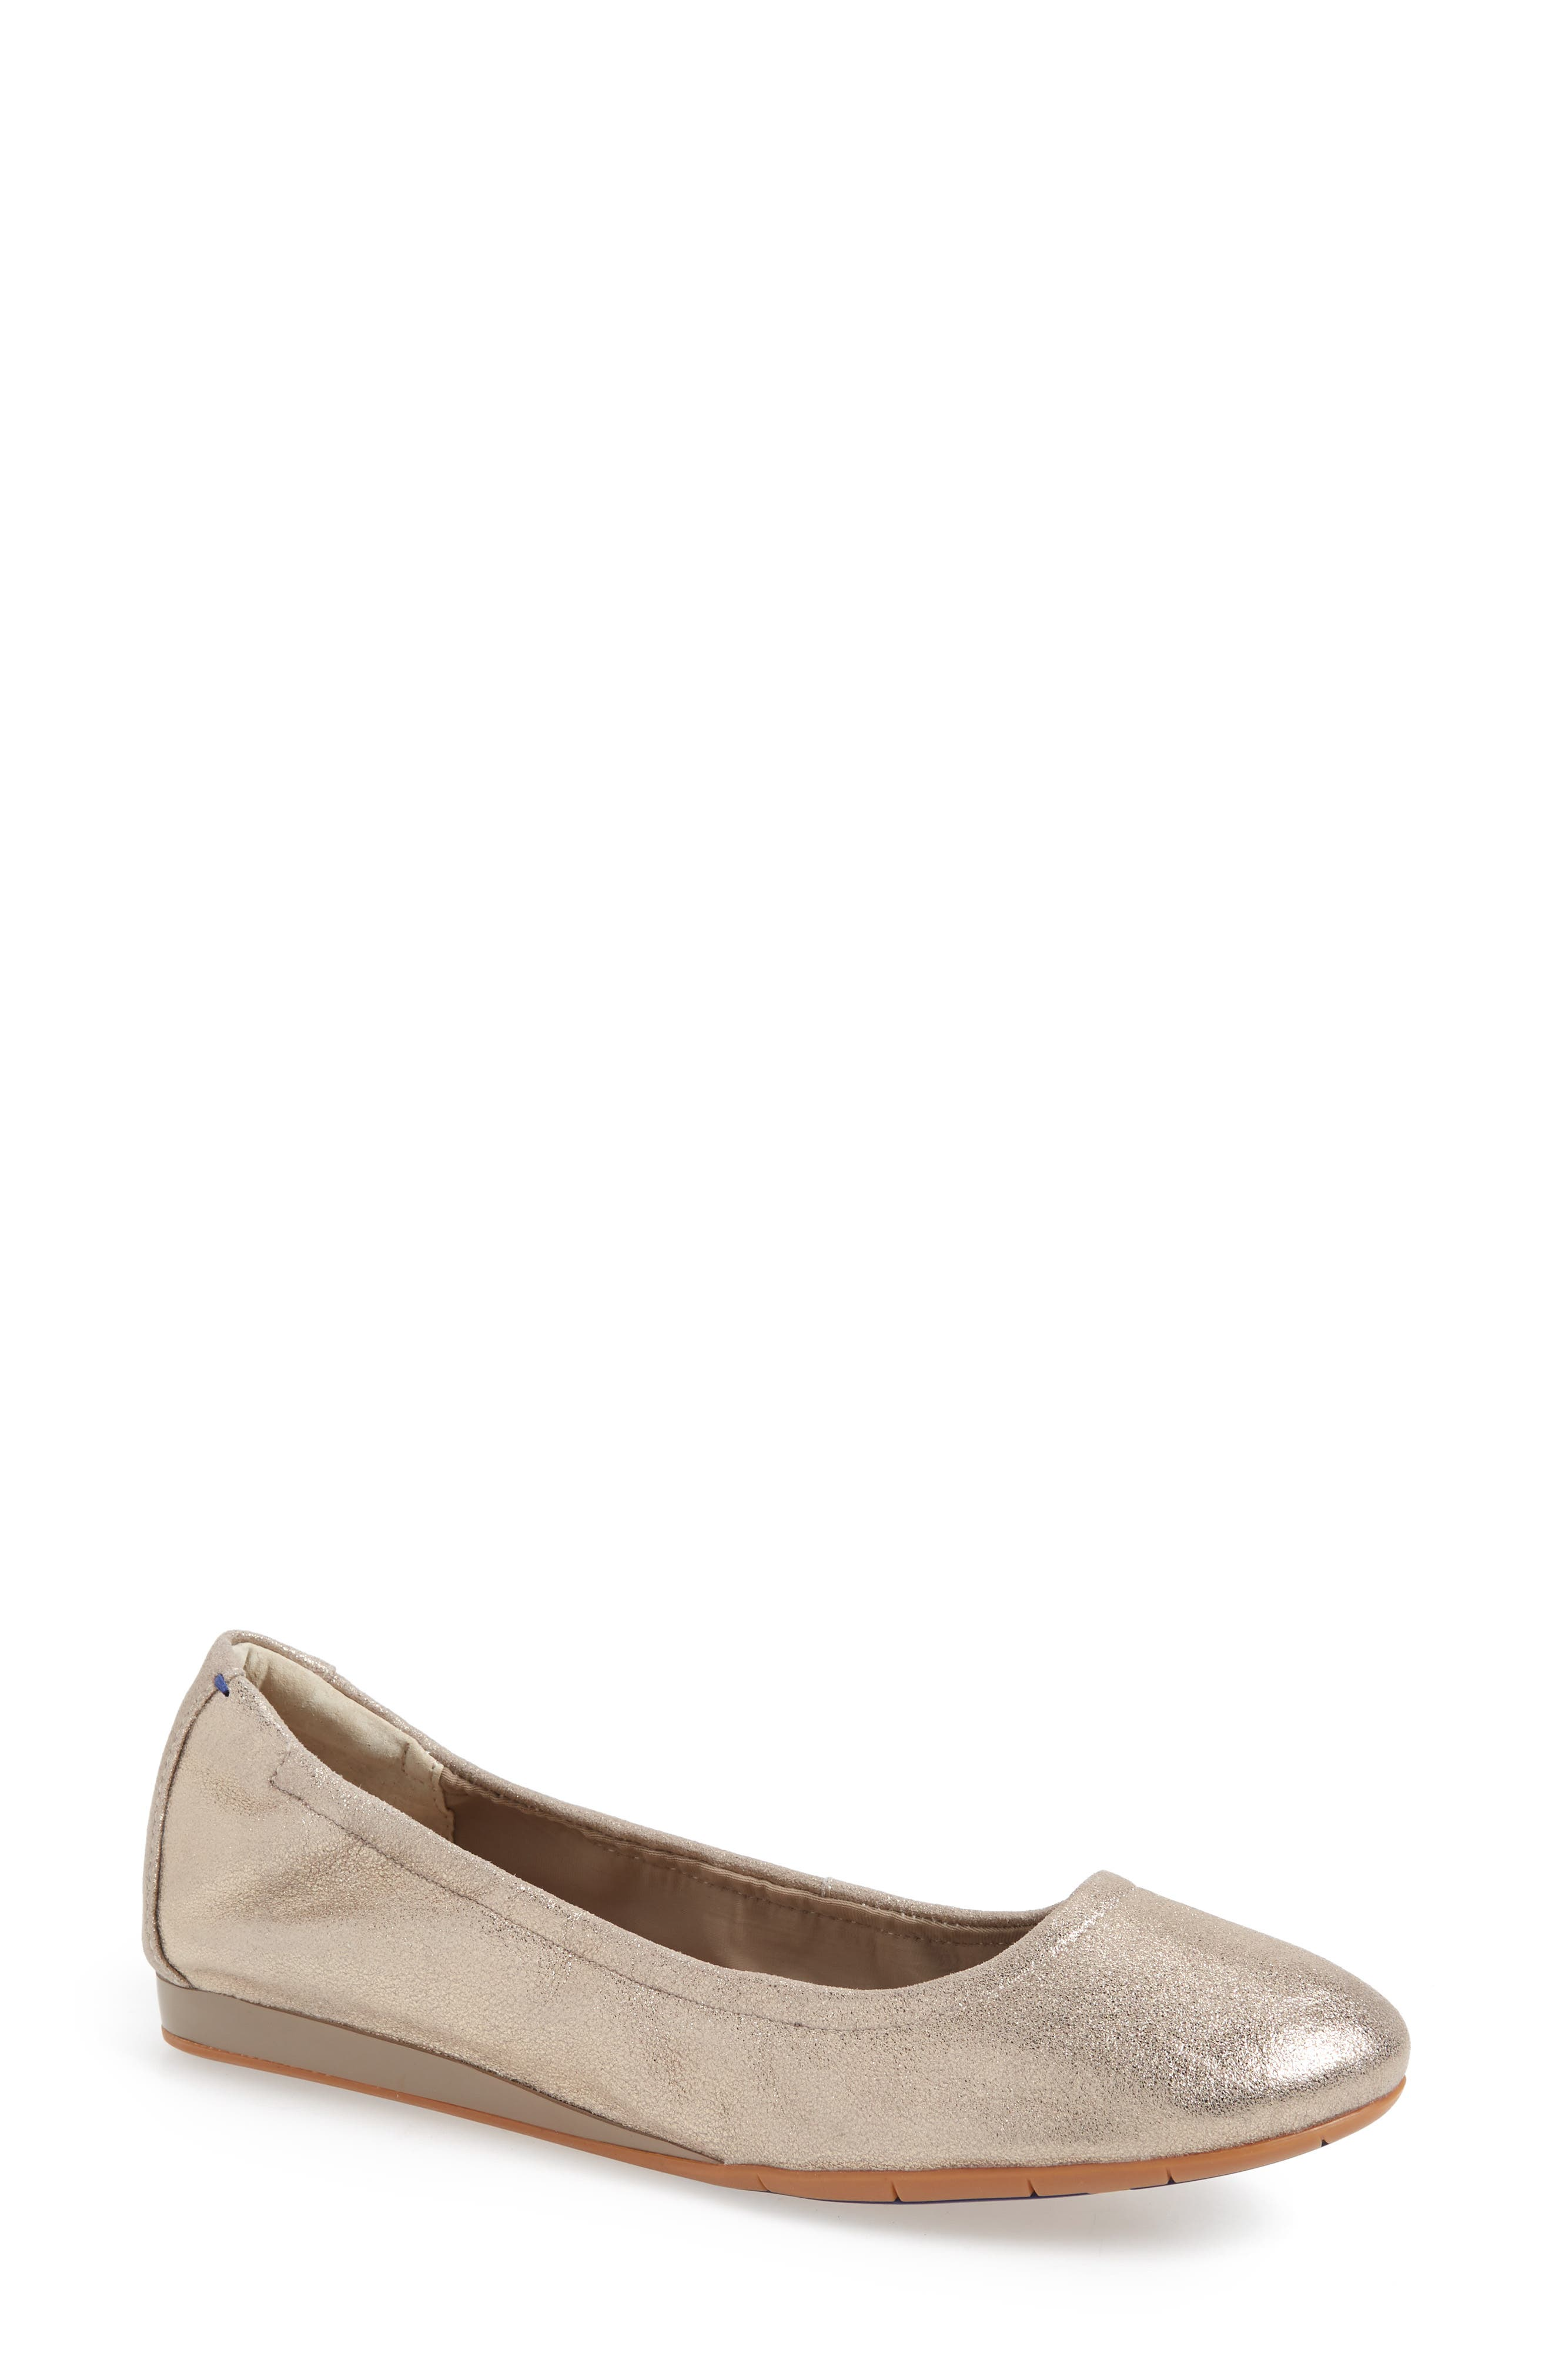 Helena Flat,                             Main thumbnail 1, color,                             TAUPE NUBUCK LEATHER